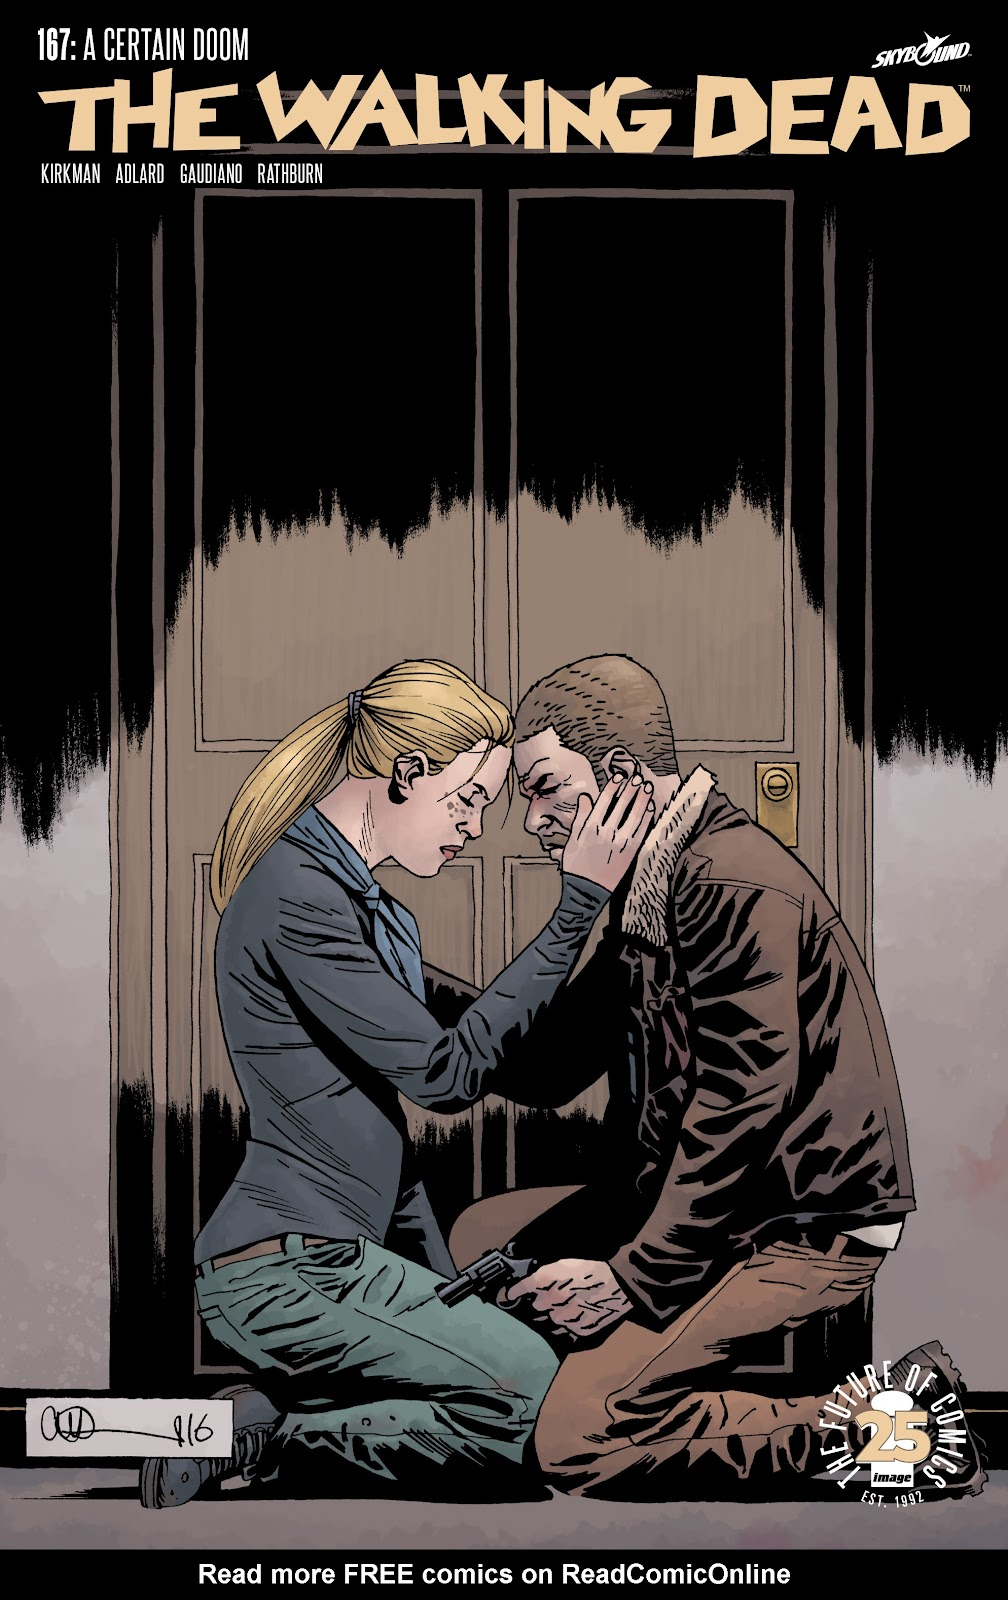 The Walking Dead Issue #167 Page 1